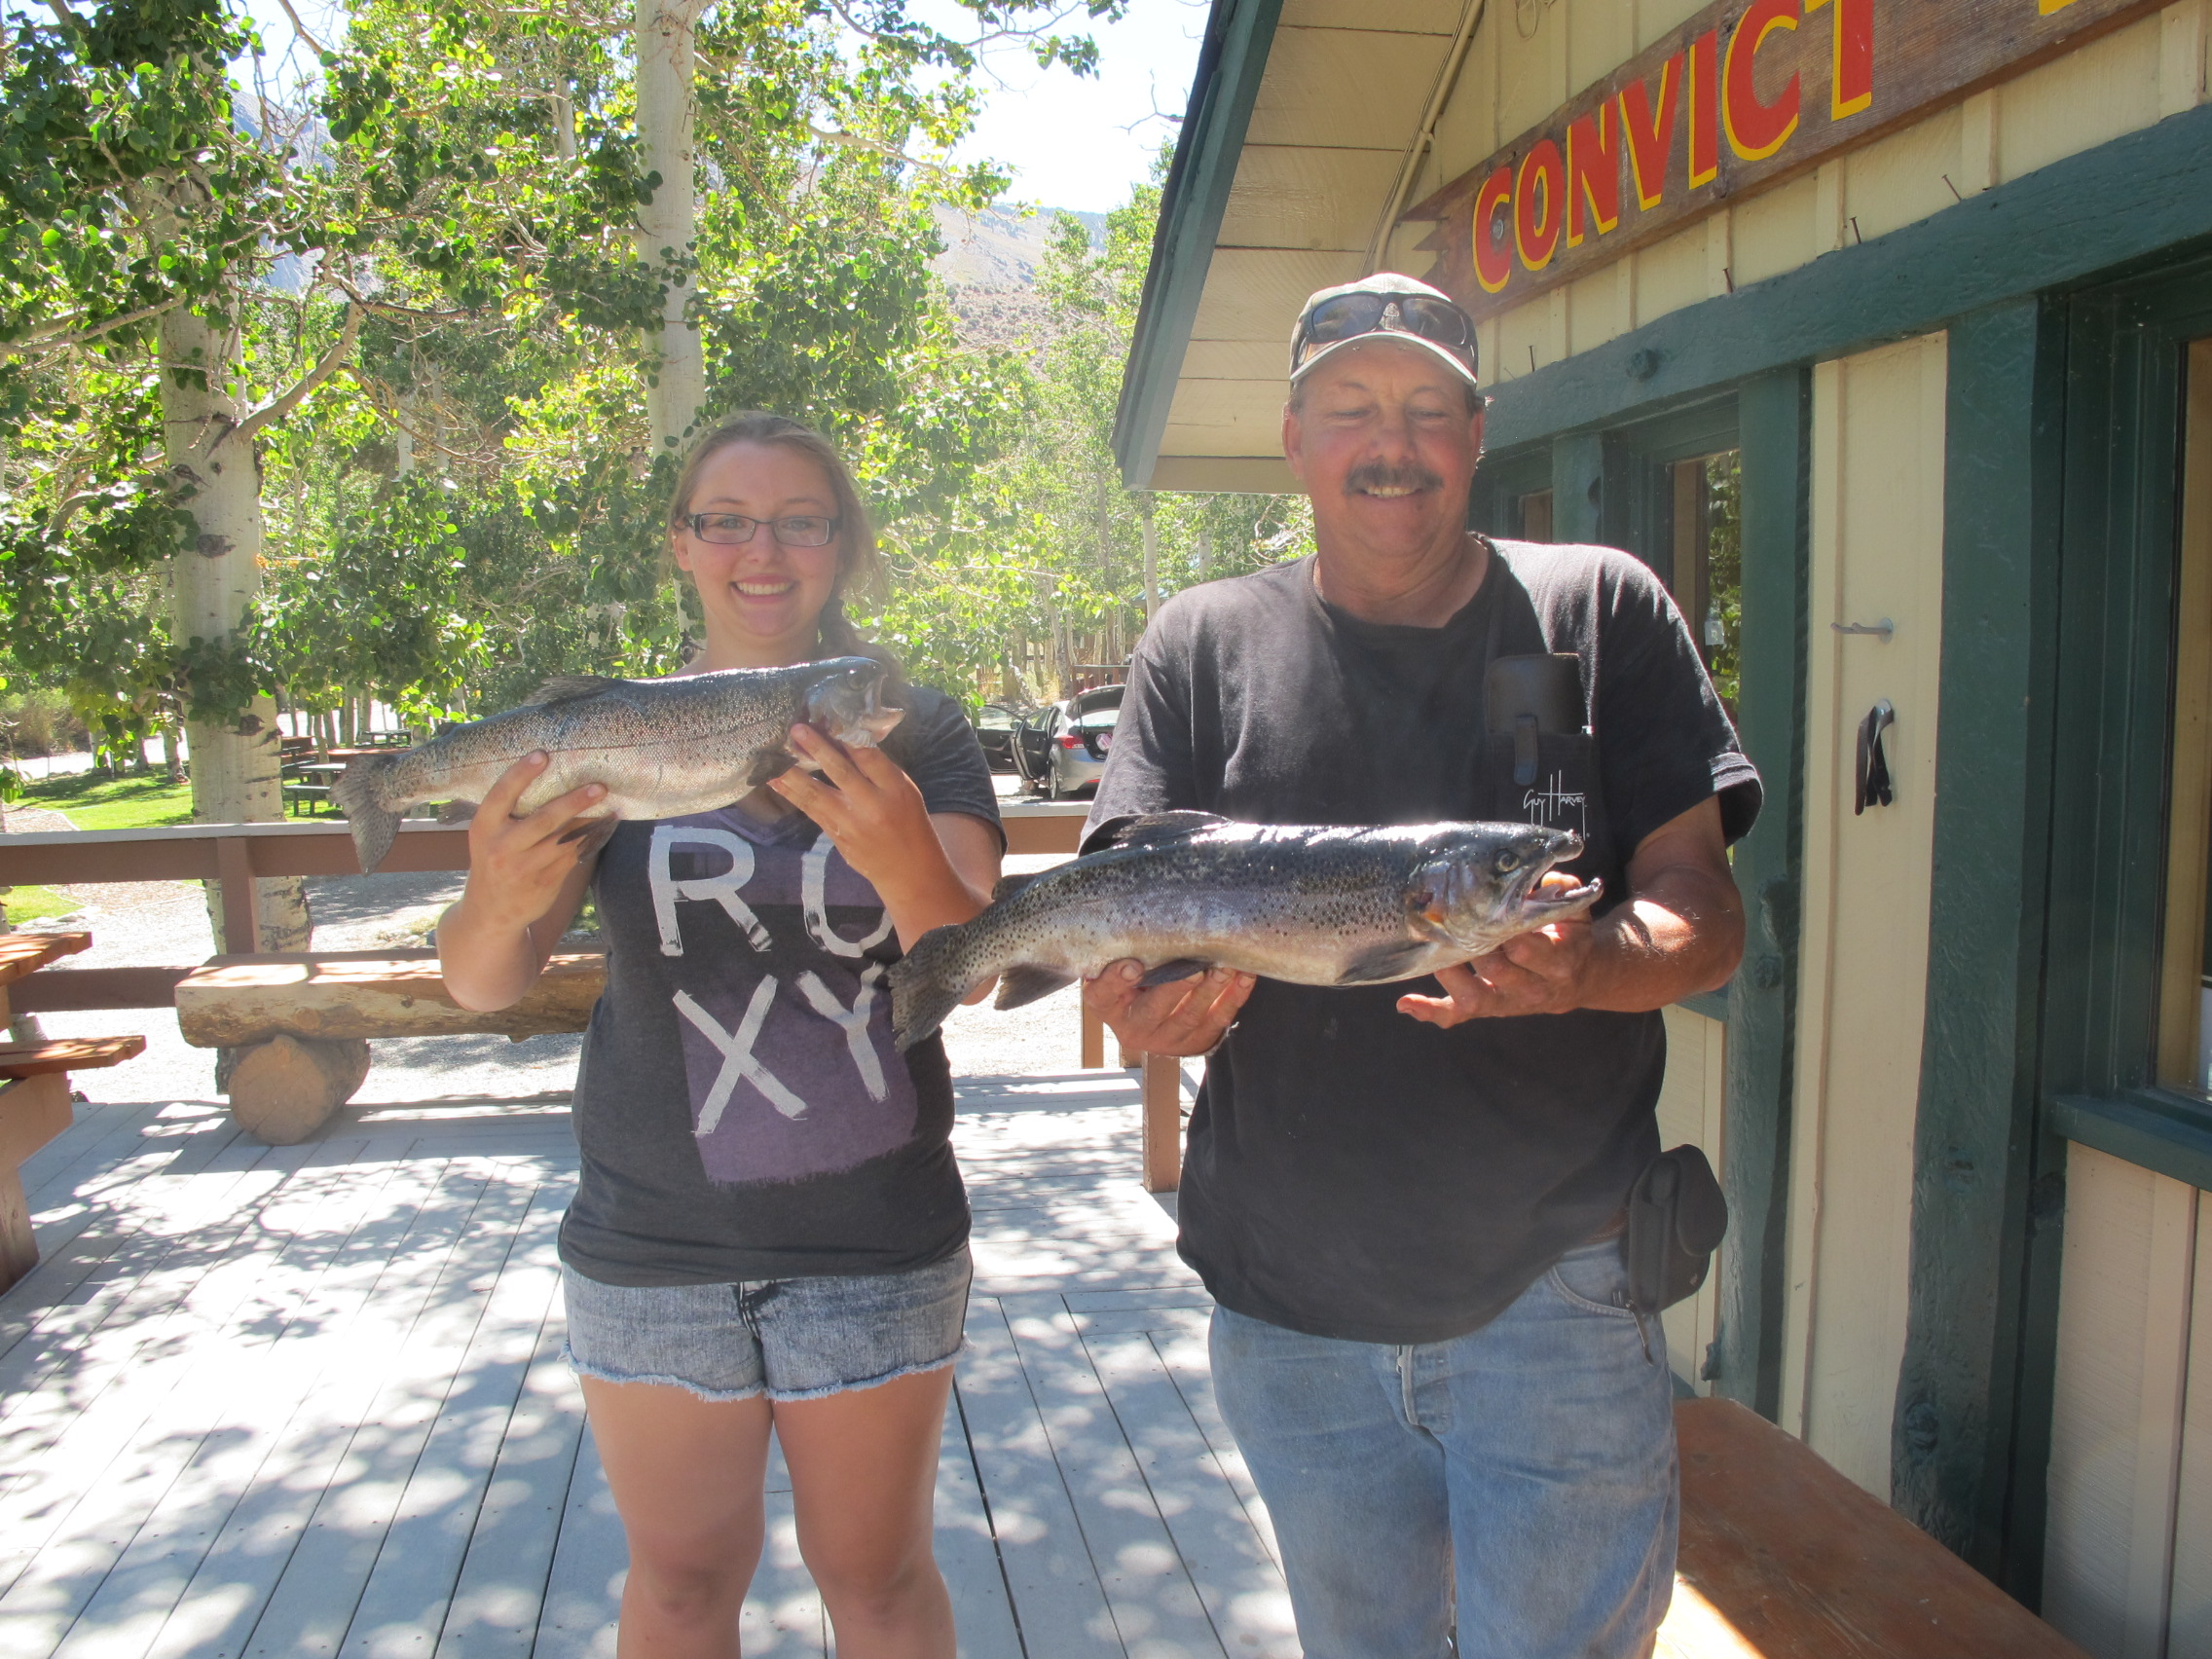 Fishing reports august 24 2013 convict lake resort for Convict lake fishing report